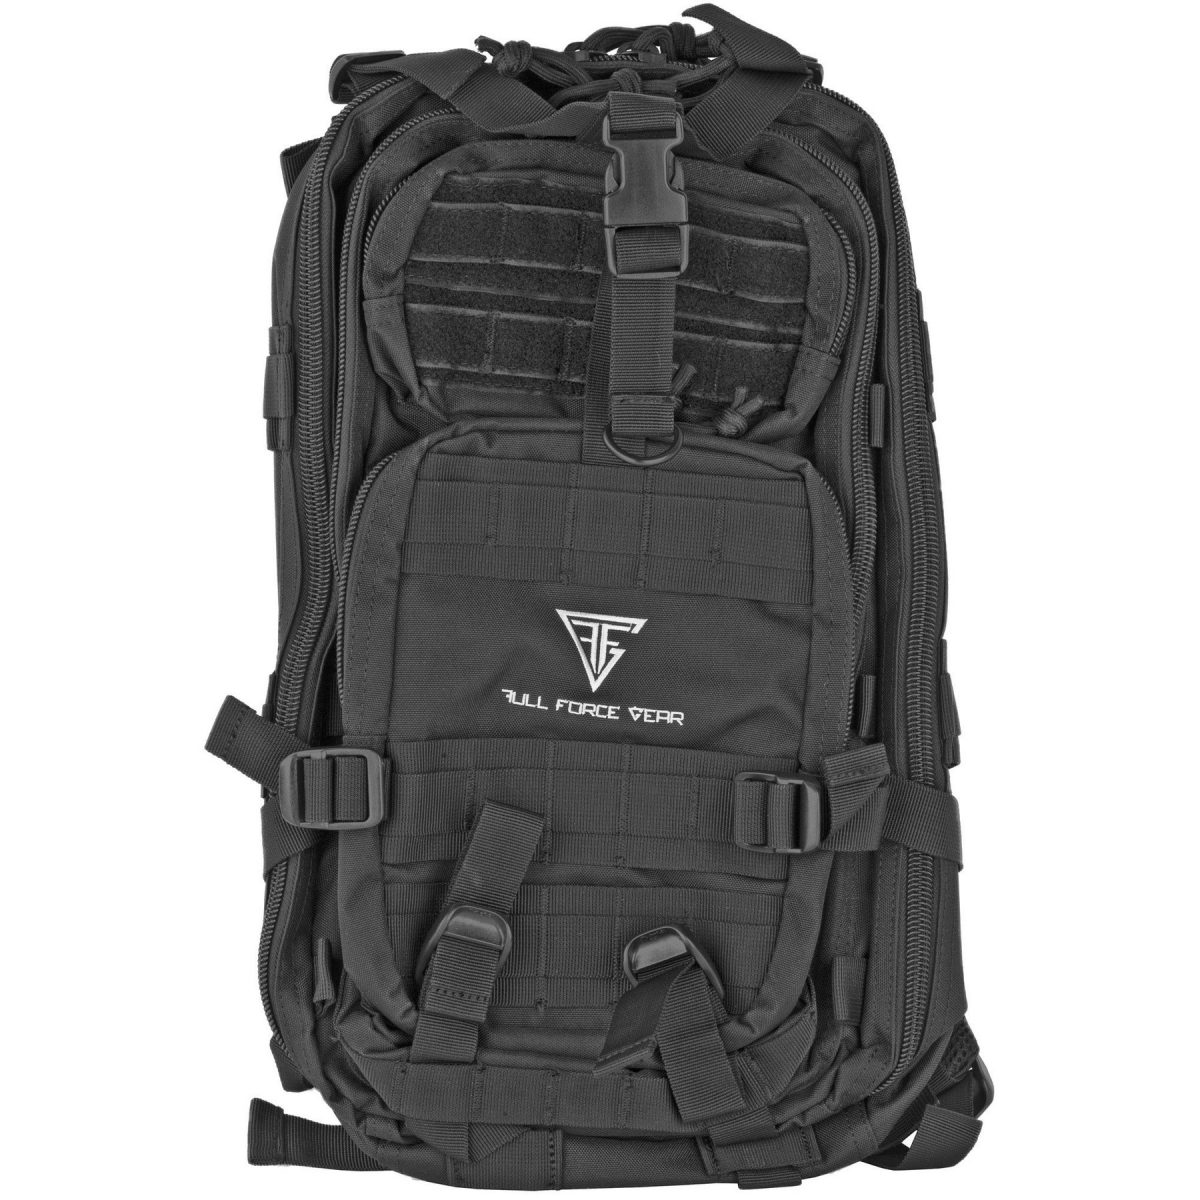 Forge Backpack Buying Tips